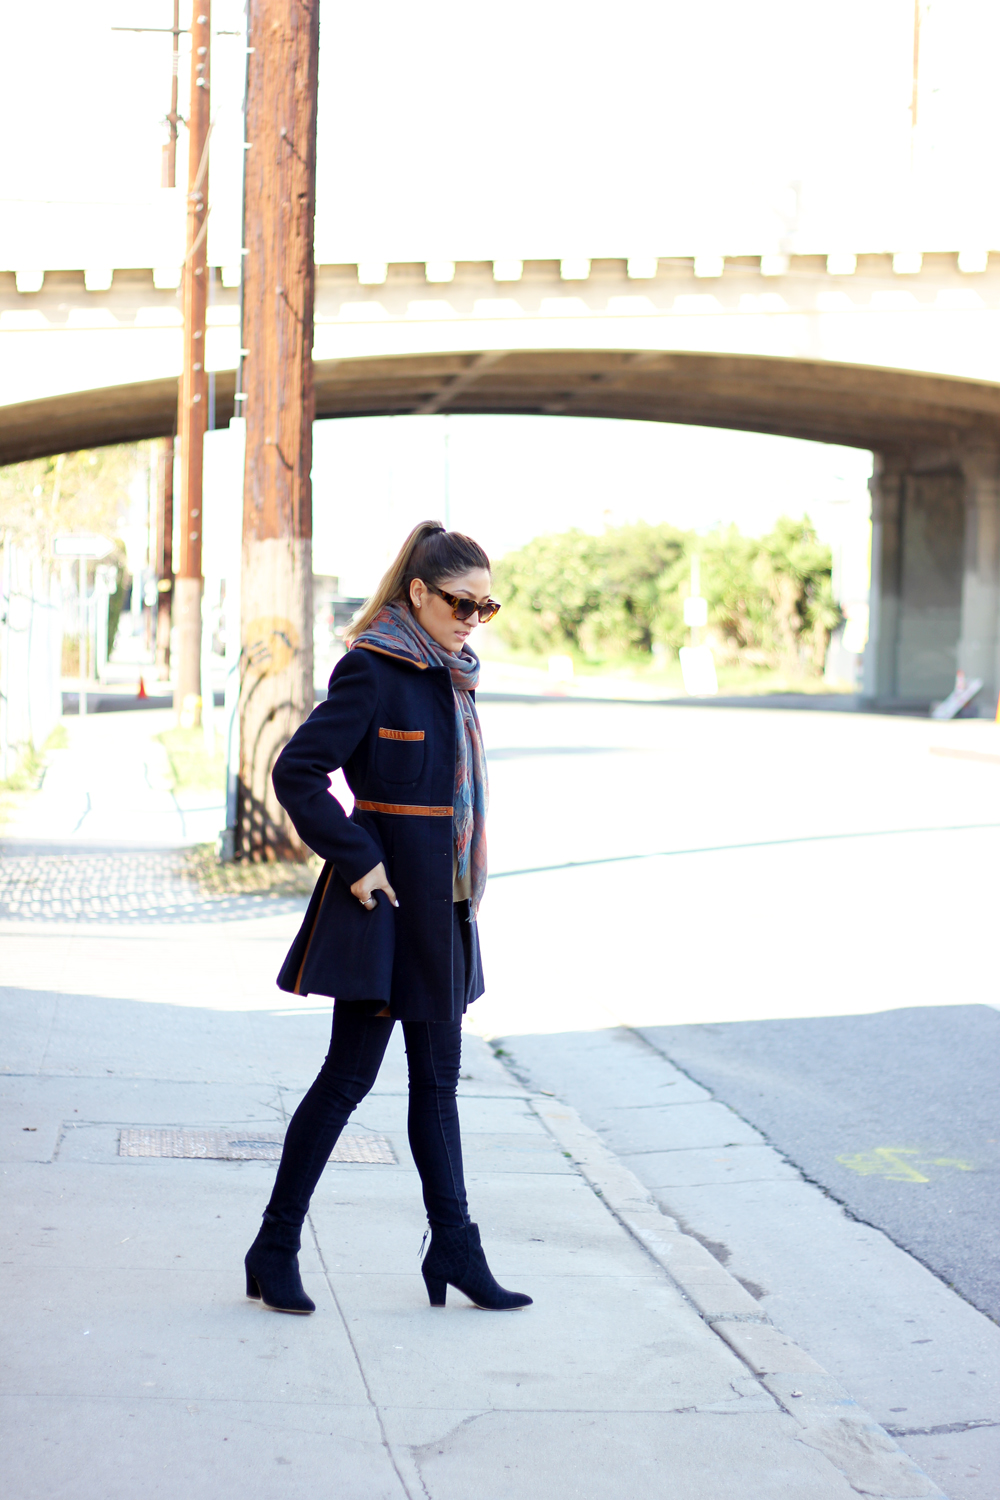 sweater weather, la, melrodstyle, street style, outfit, arts district, stylelist, who what wear, pose